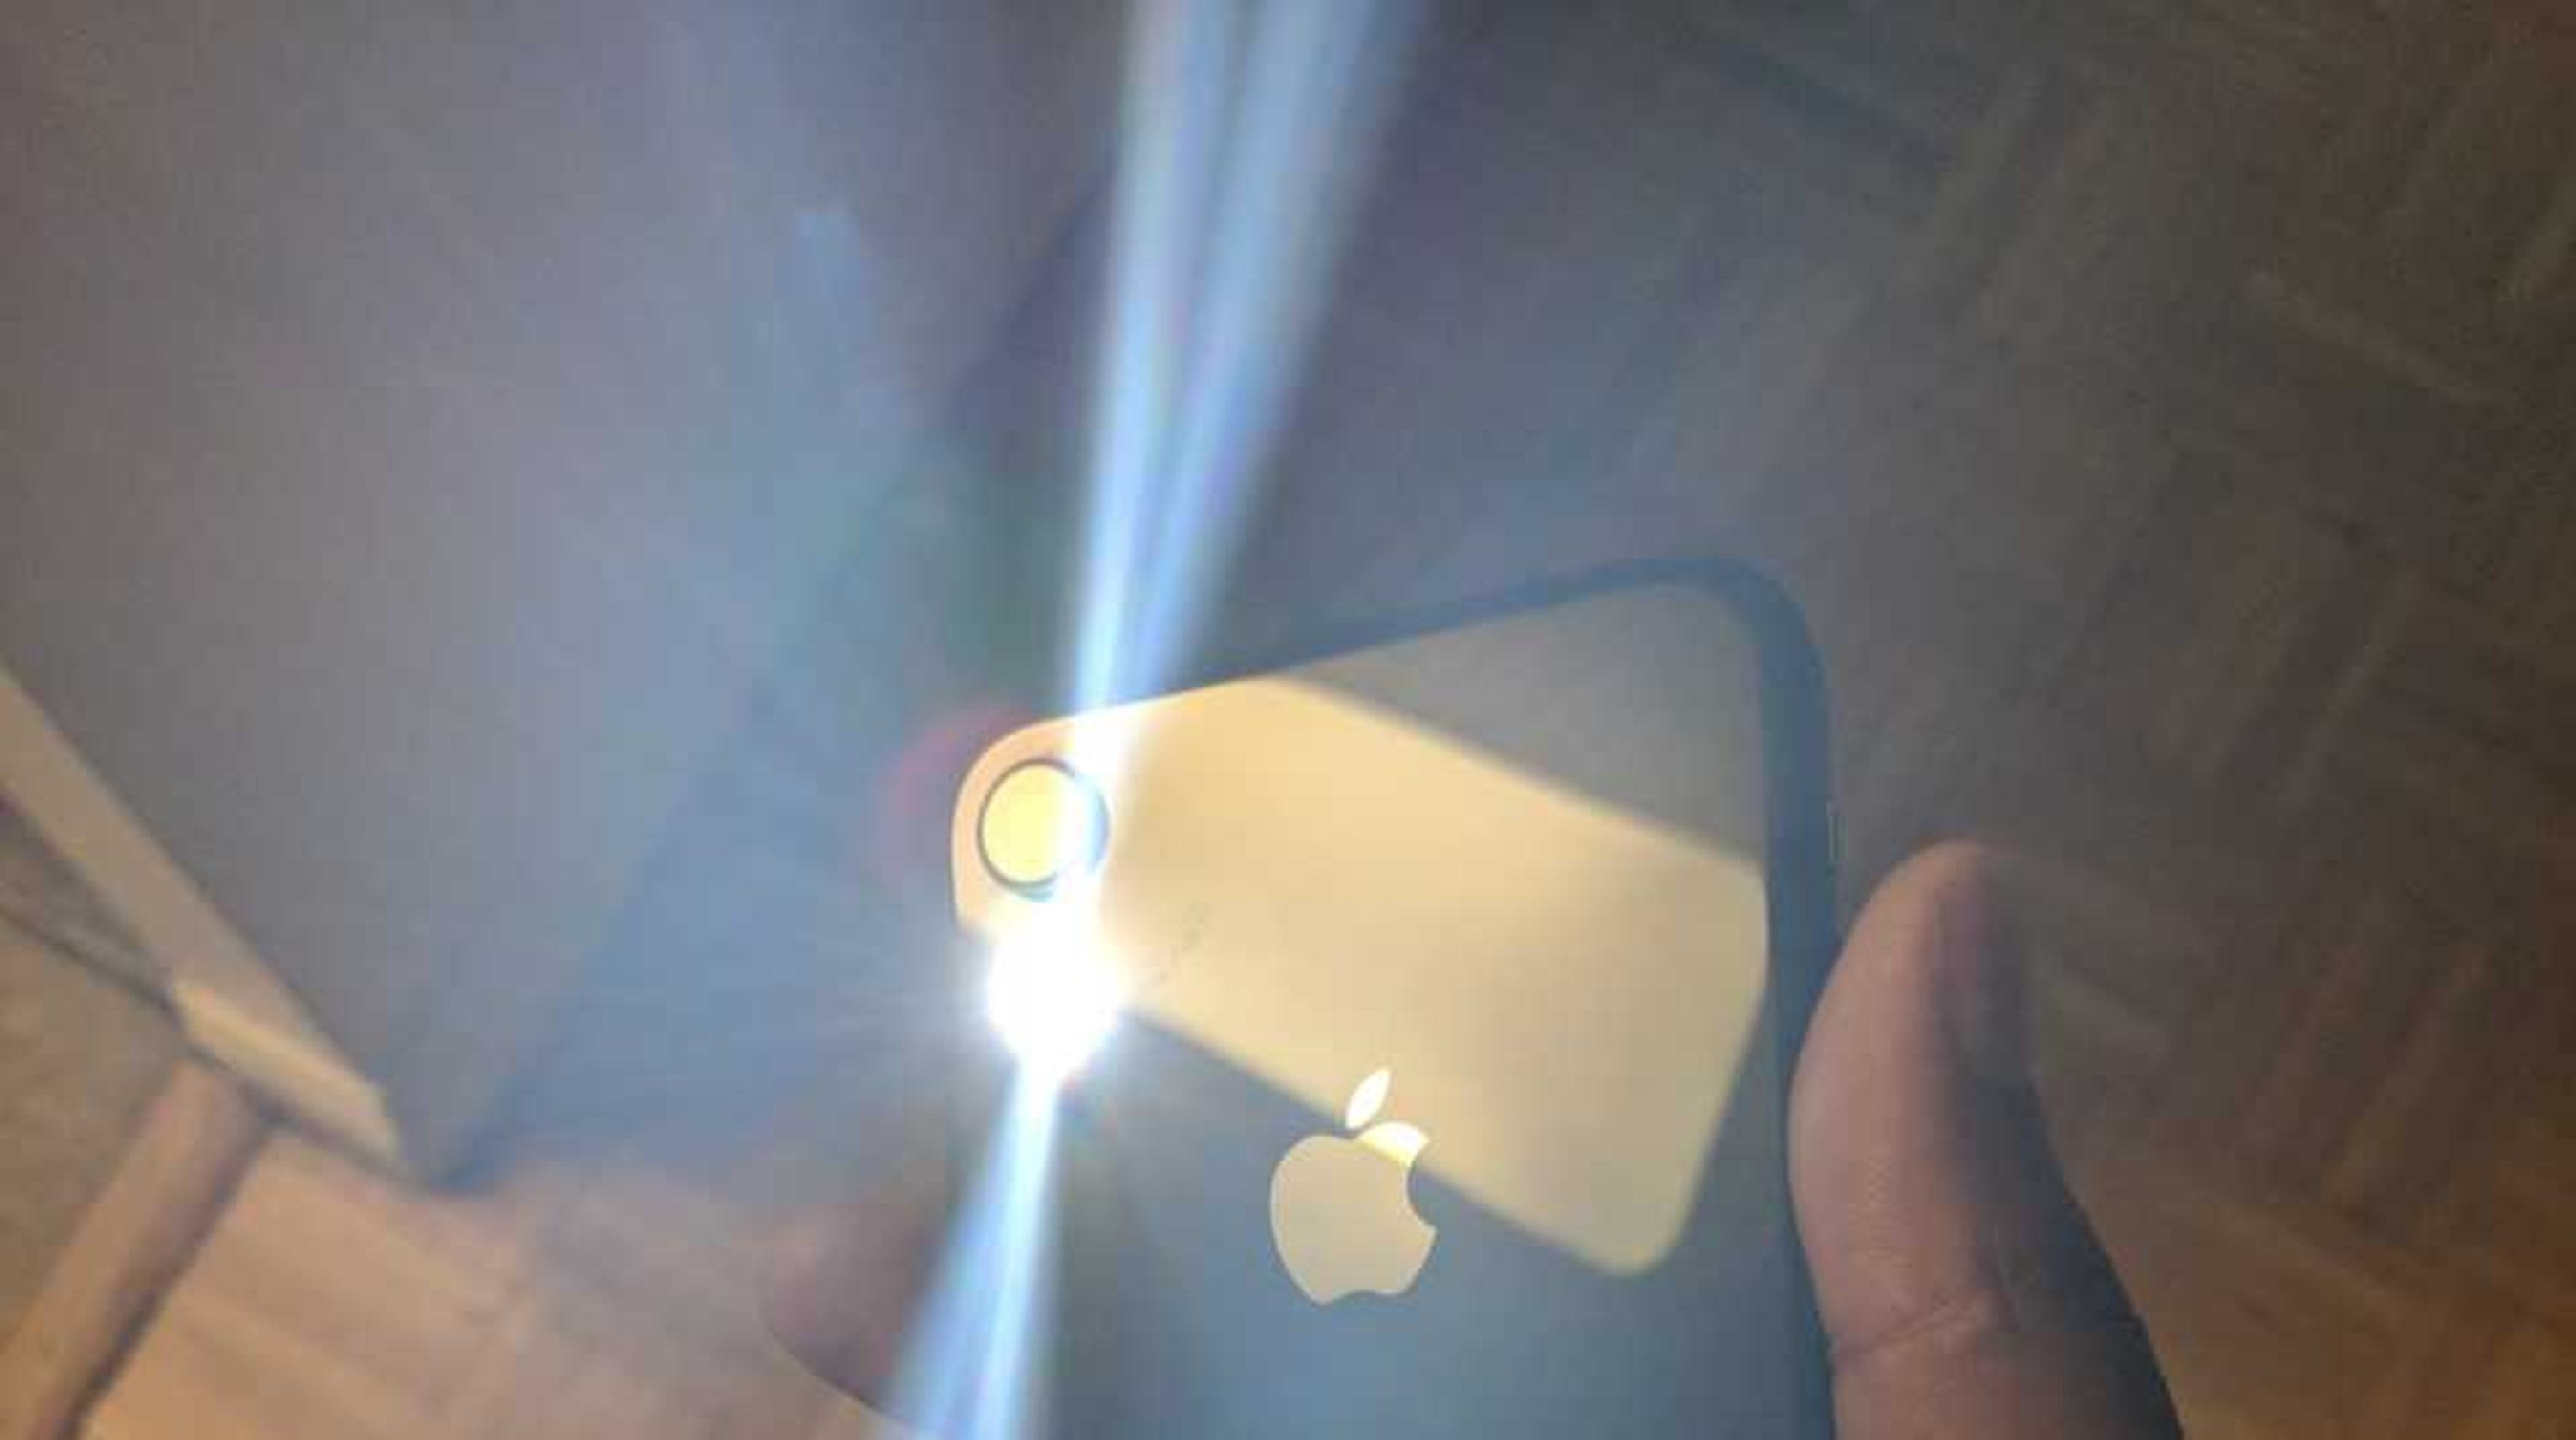 Why iPhone flashlight seems to turn itself on and how to